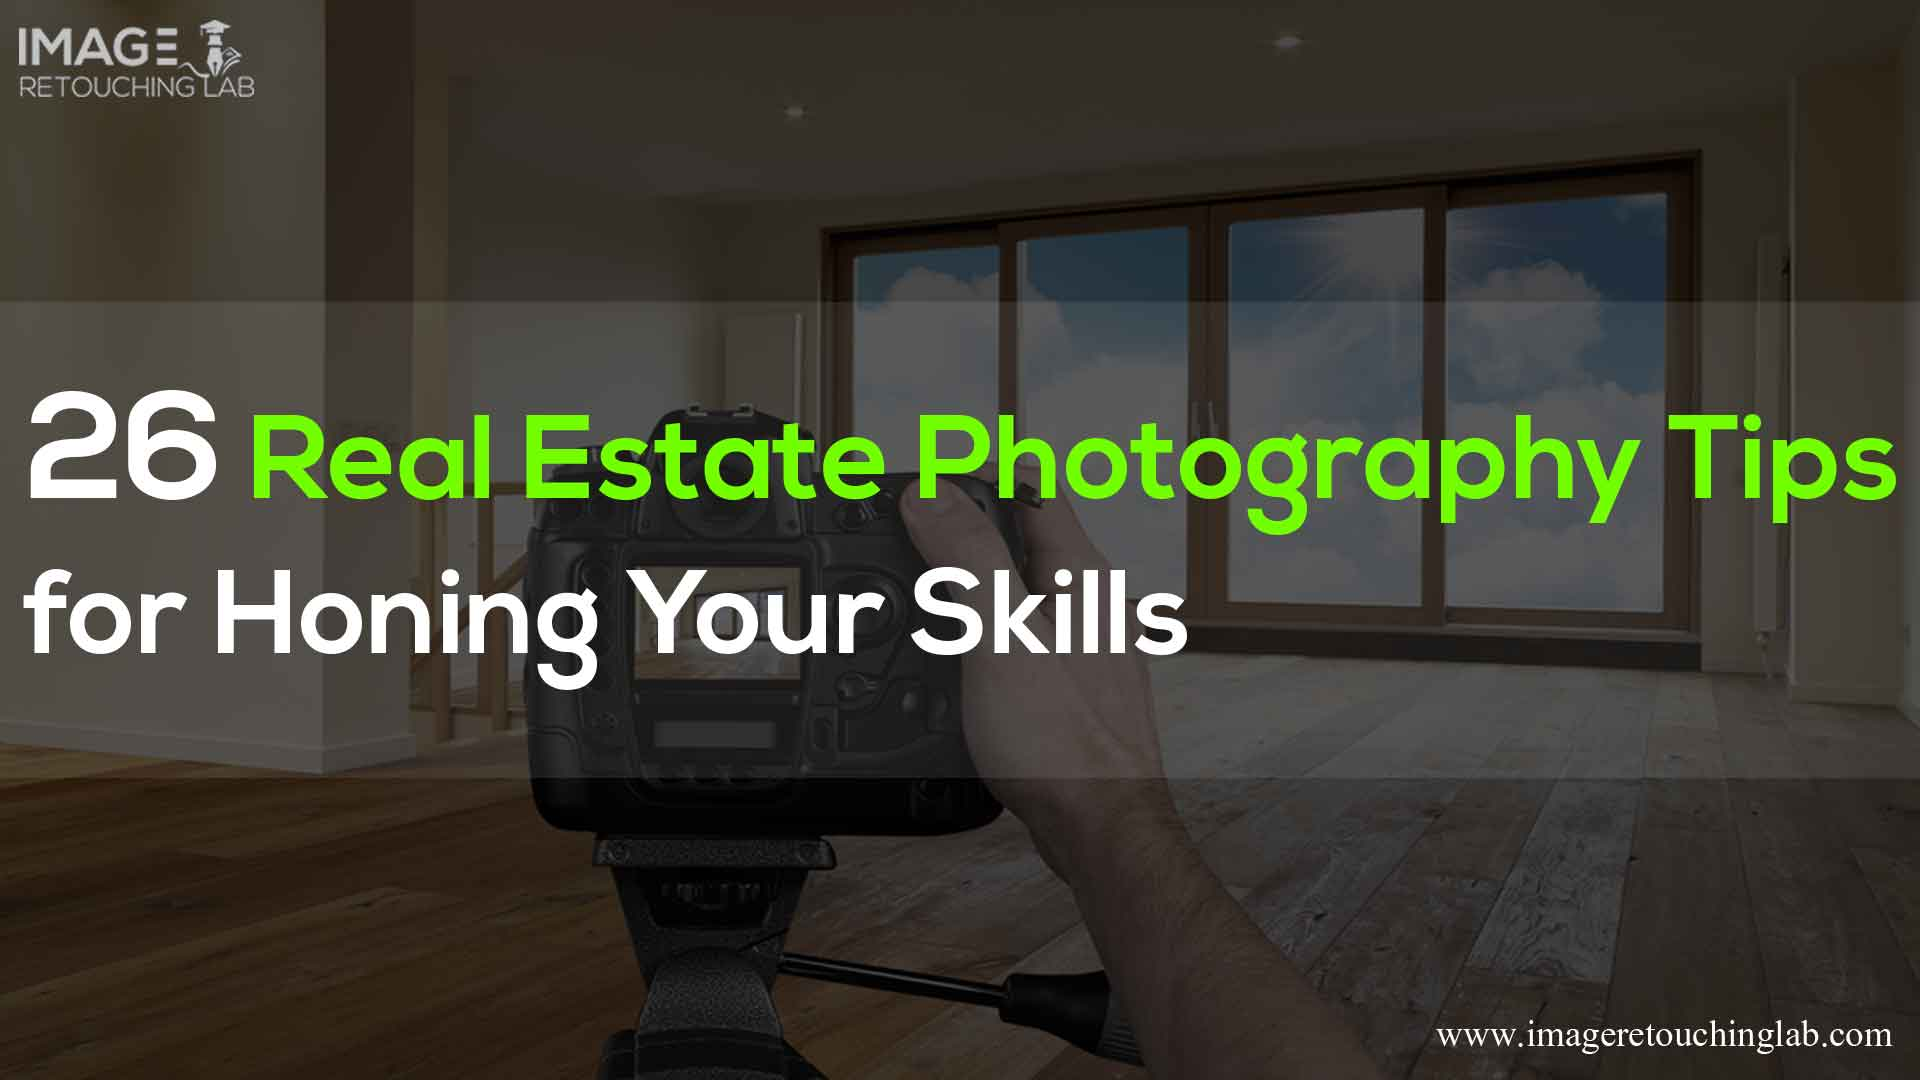 26 Real Estate Photography Tips for Honing Your Skills